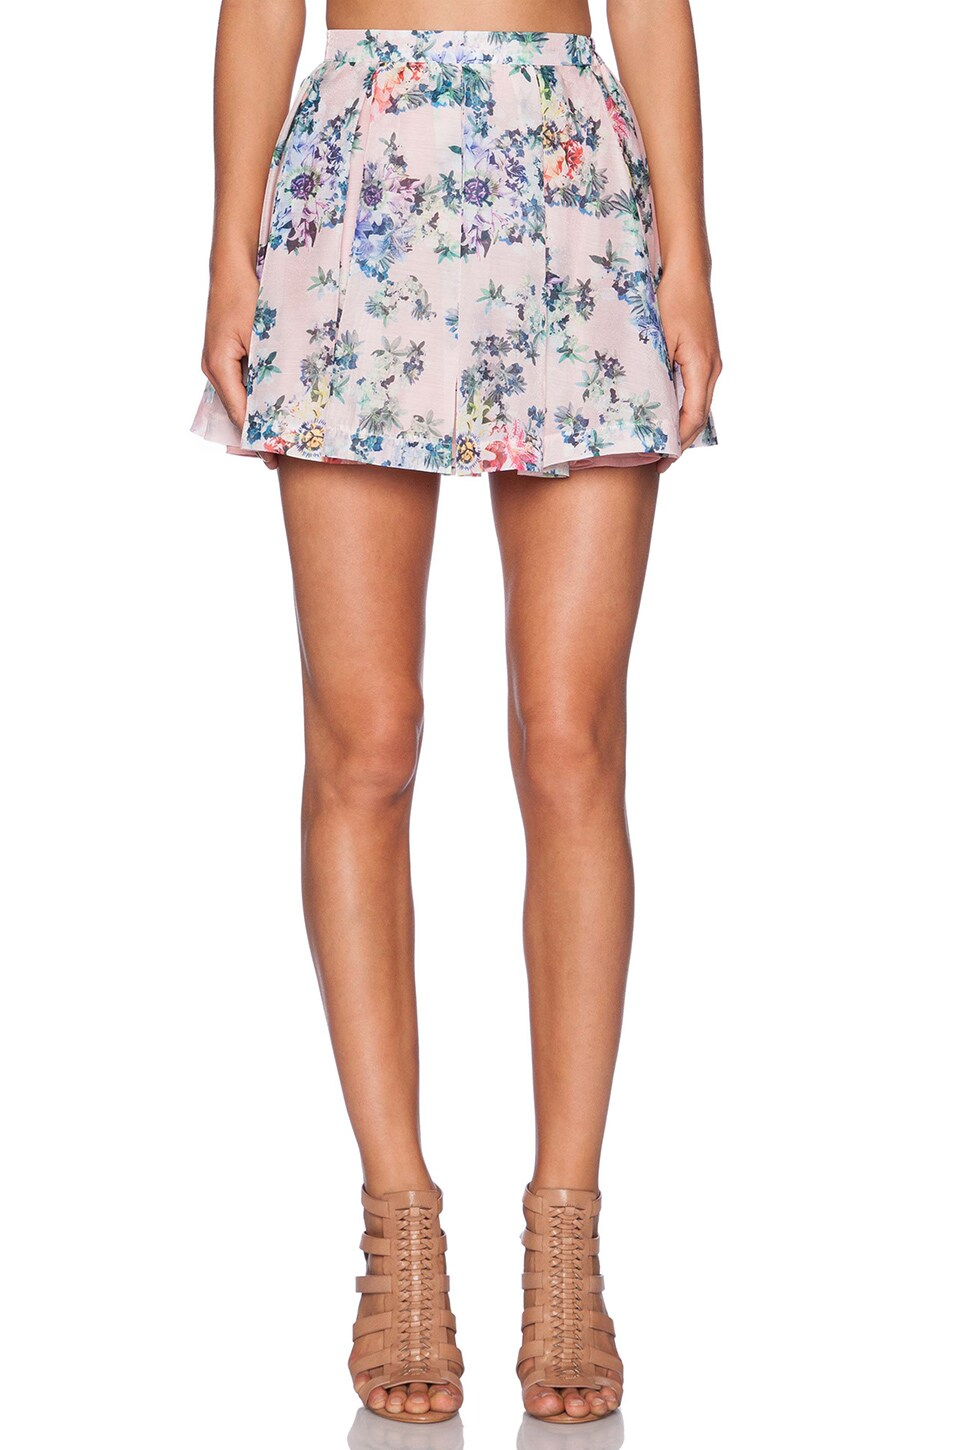 Lucca Couture Circle Skirt in Pink White Floral